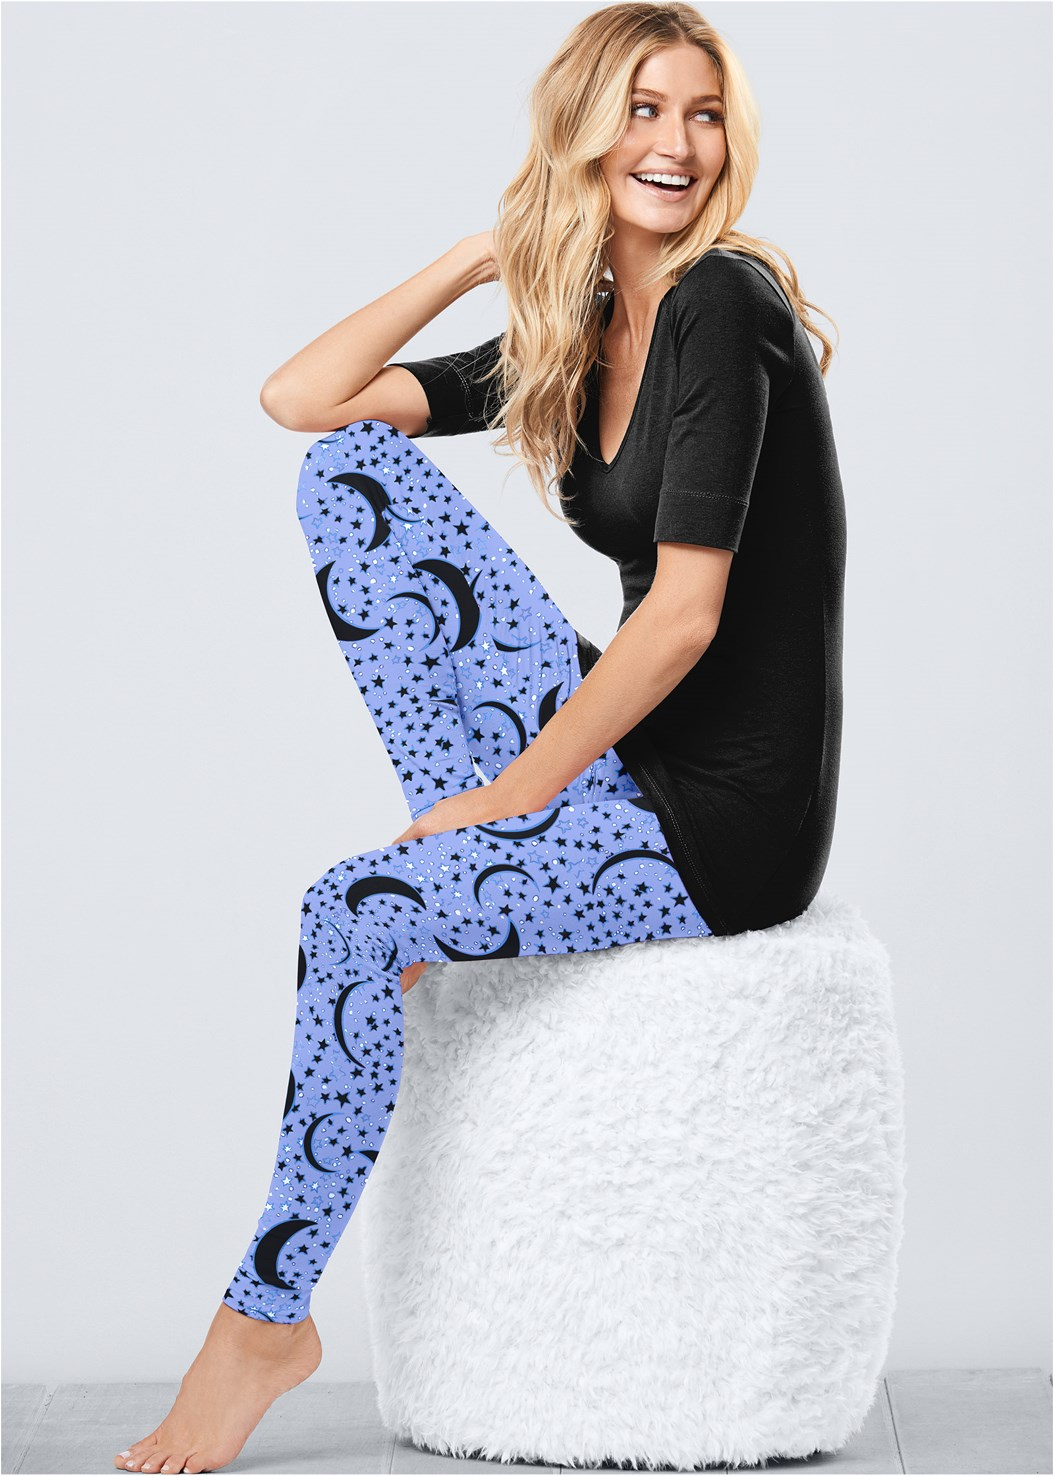 Plush Sleep Leggings,Long And Lean V-Neck Tee